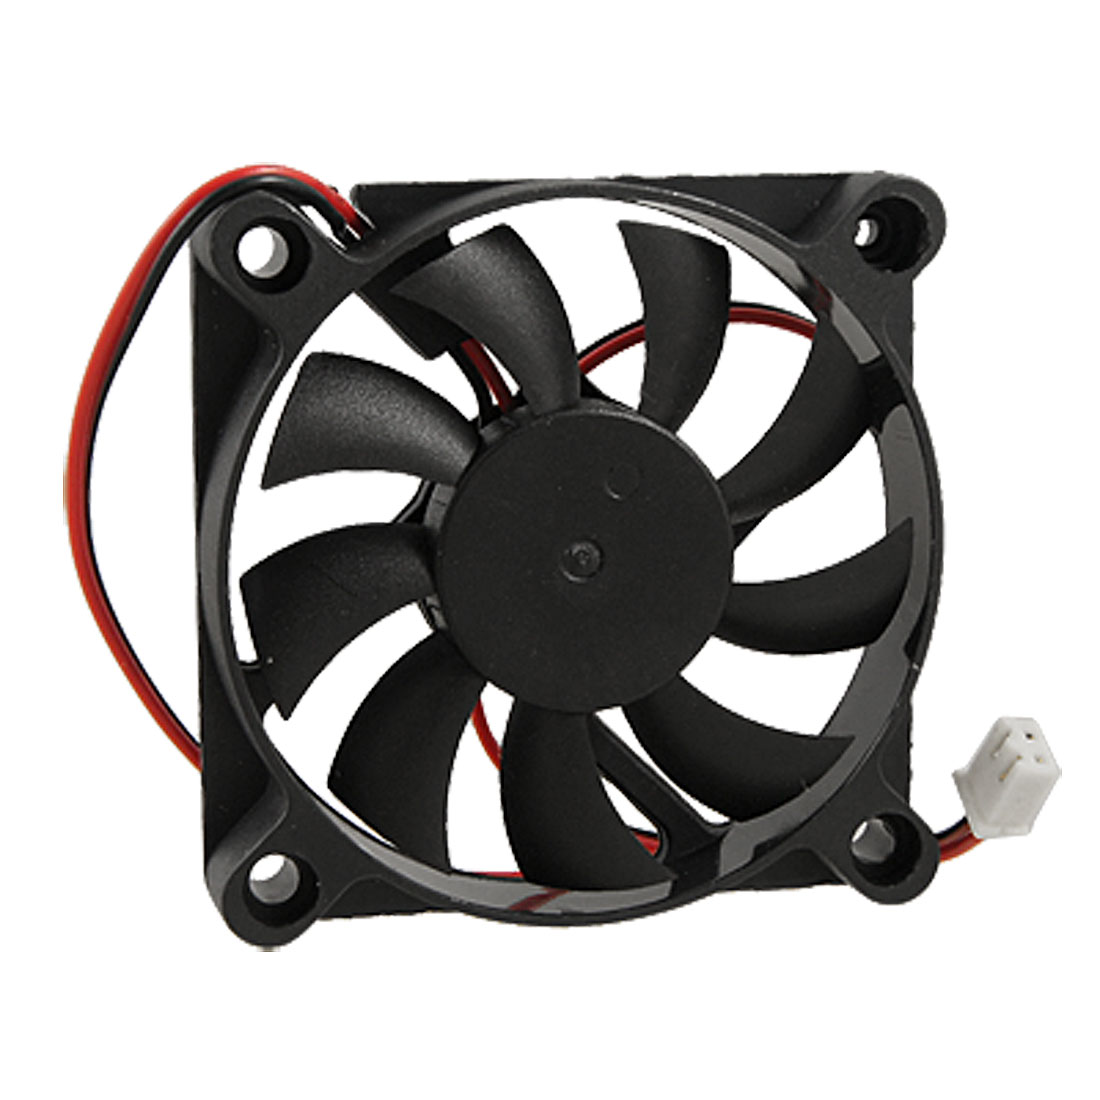 YOC Hot Desktop PC Case DC 12V 0.16A 60mm 2 Pin Cooler Cooling Fan gdstime 10 pcs dc 12v 14025 pc case cooling fan 140mm x 25mm 14cm 2 wire 2pin connector computer 140x140x25mm